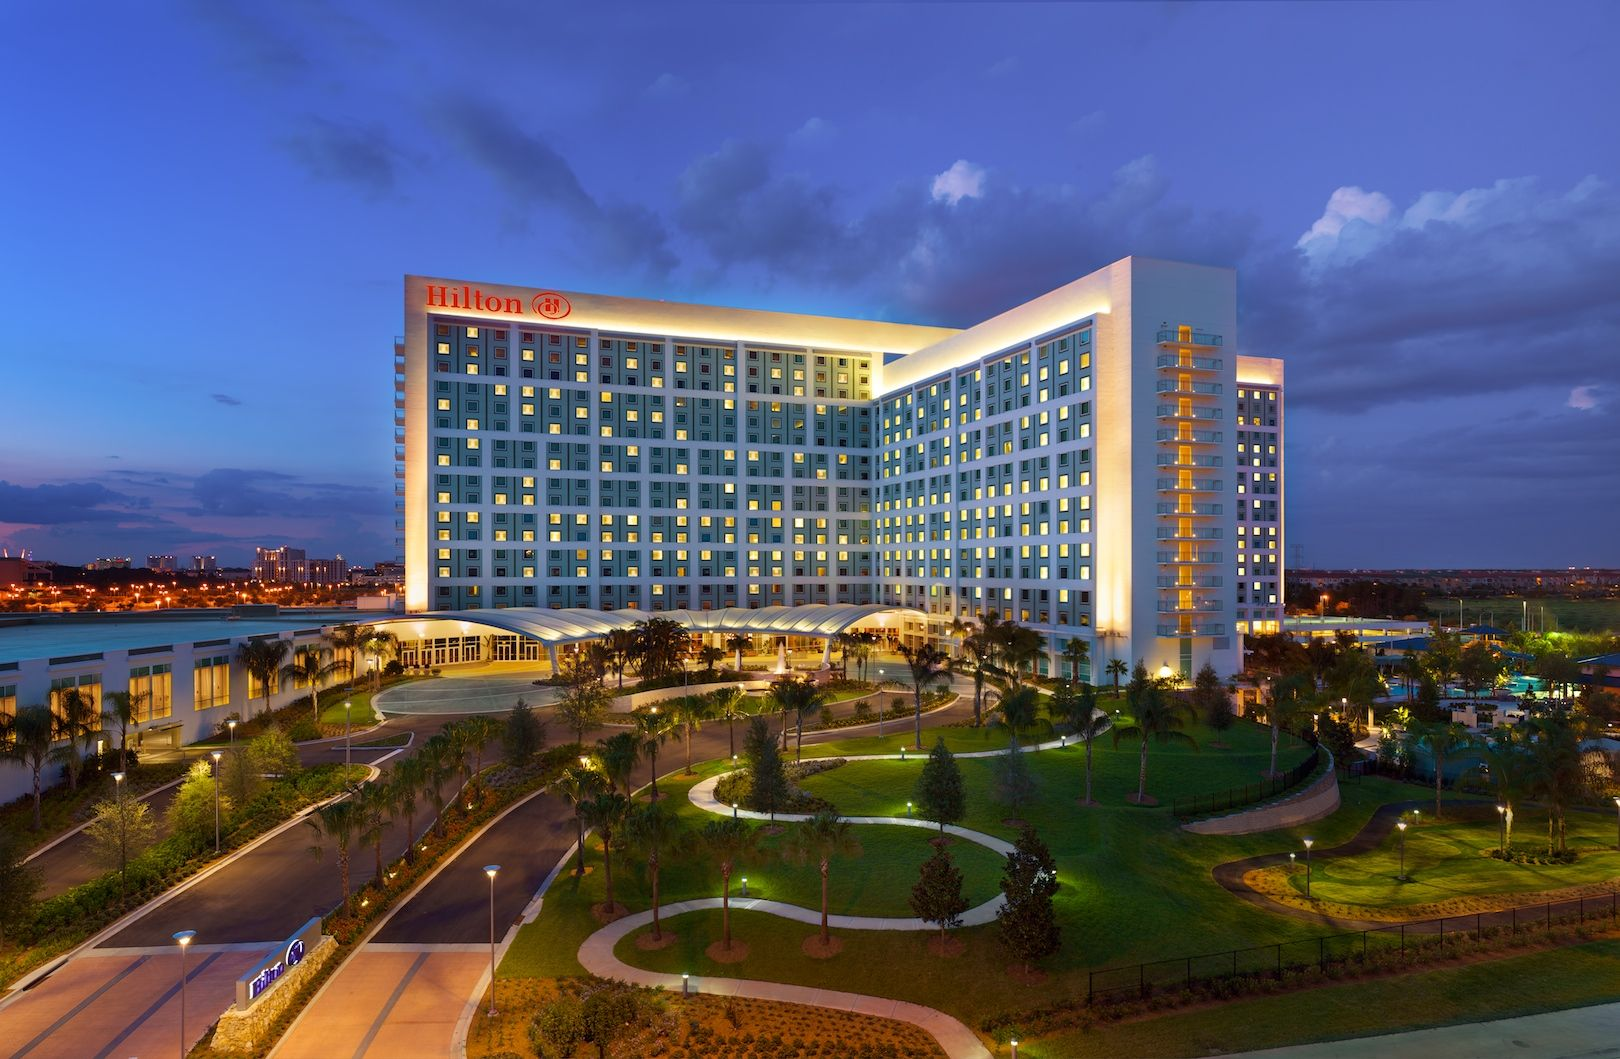 Awesome Meet Host Hotels Book Your Rooms Today The Hilton Orlando Hotel I Drive Destination Parkway Attached To Convention Center